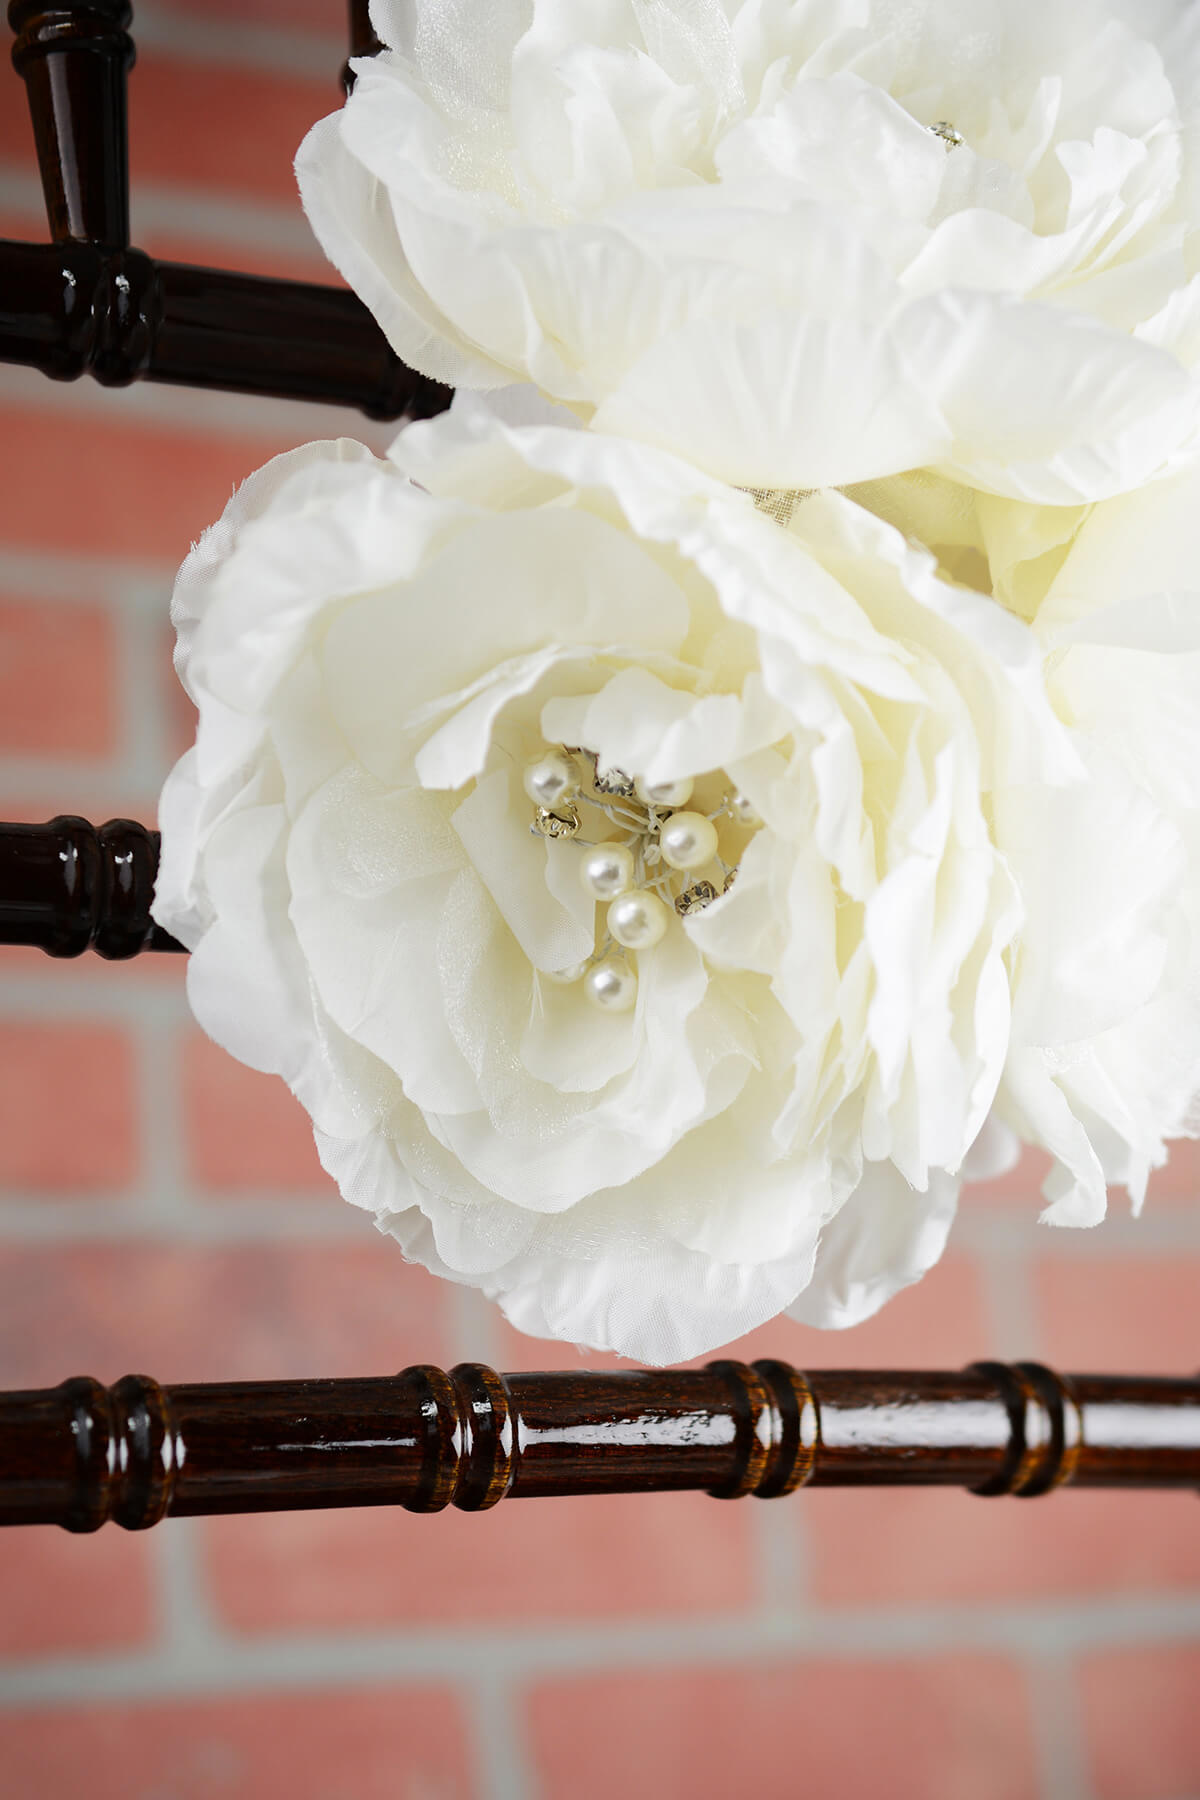 Bridal Flower Cluster with Diamond Accents Wedding Decoration